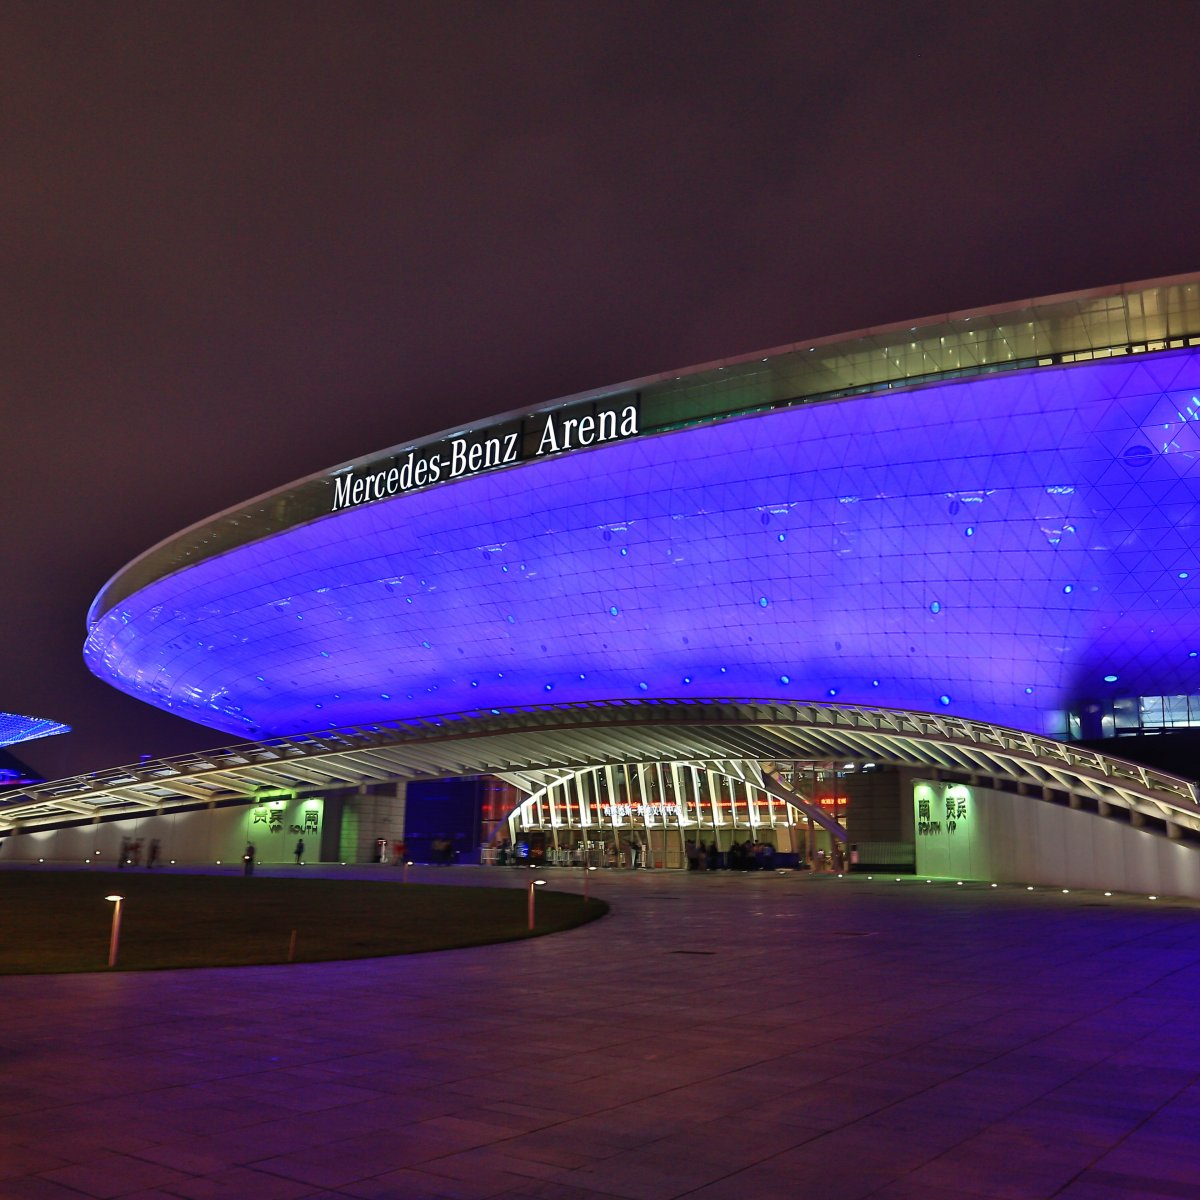 Exterior Image of Mercedes-Benz Arena in China at night